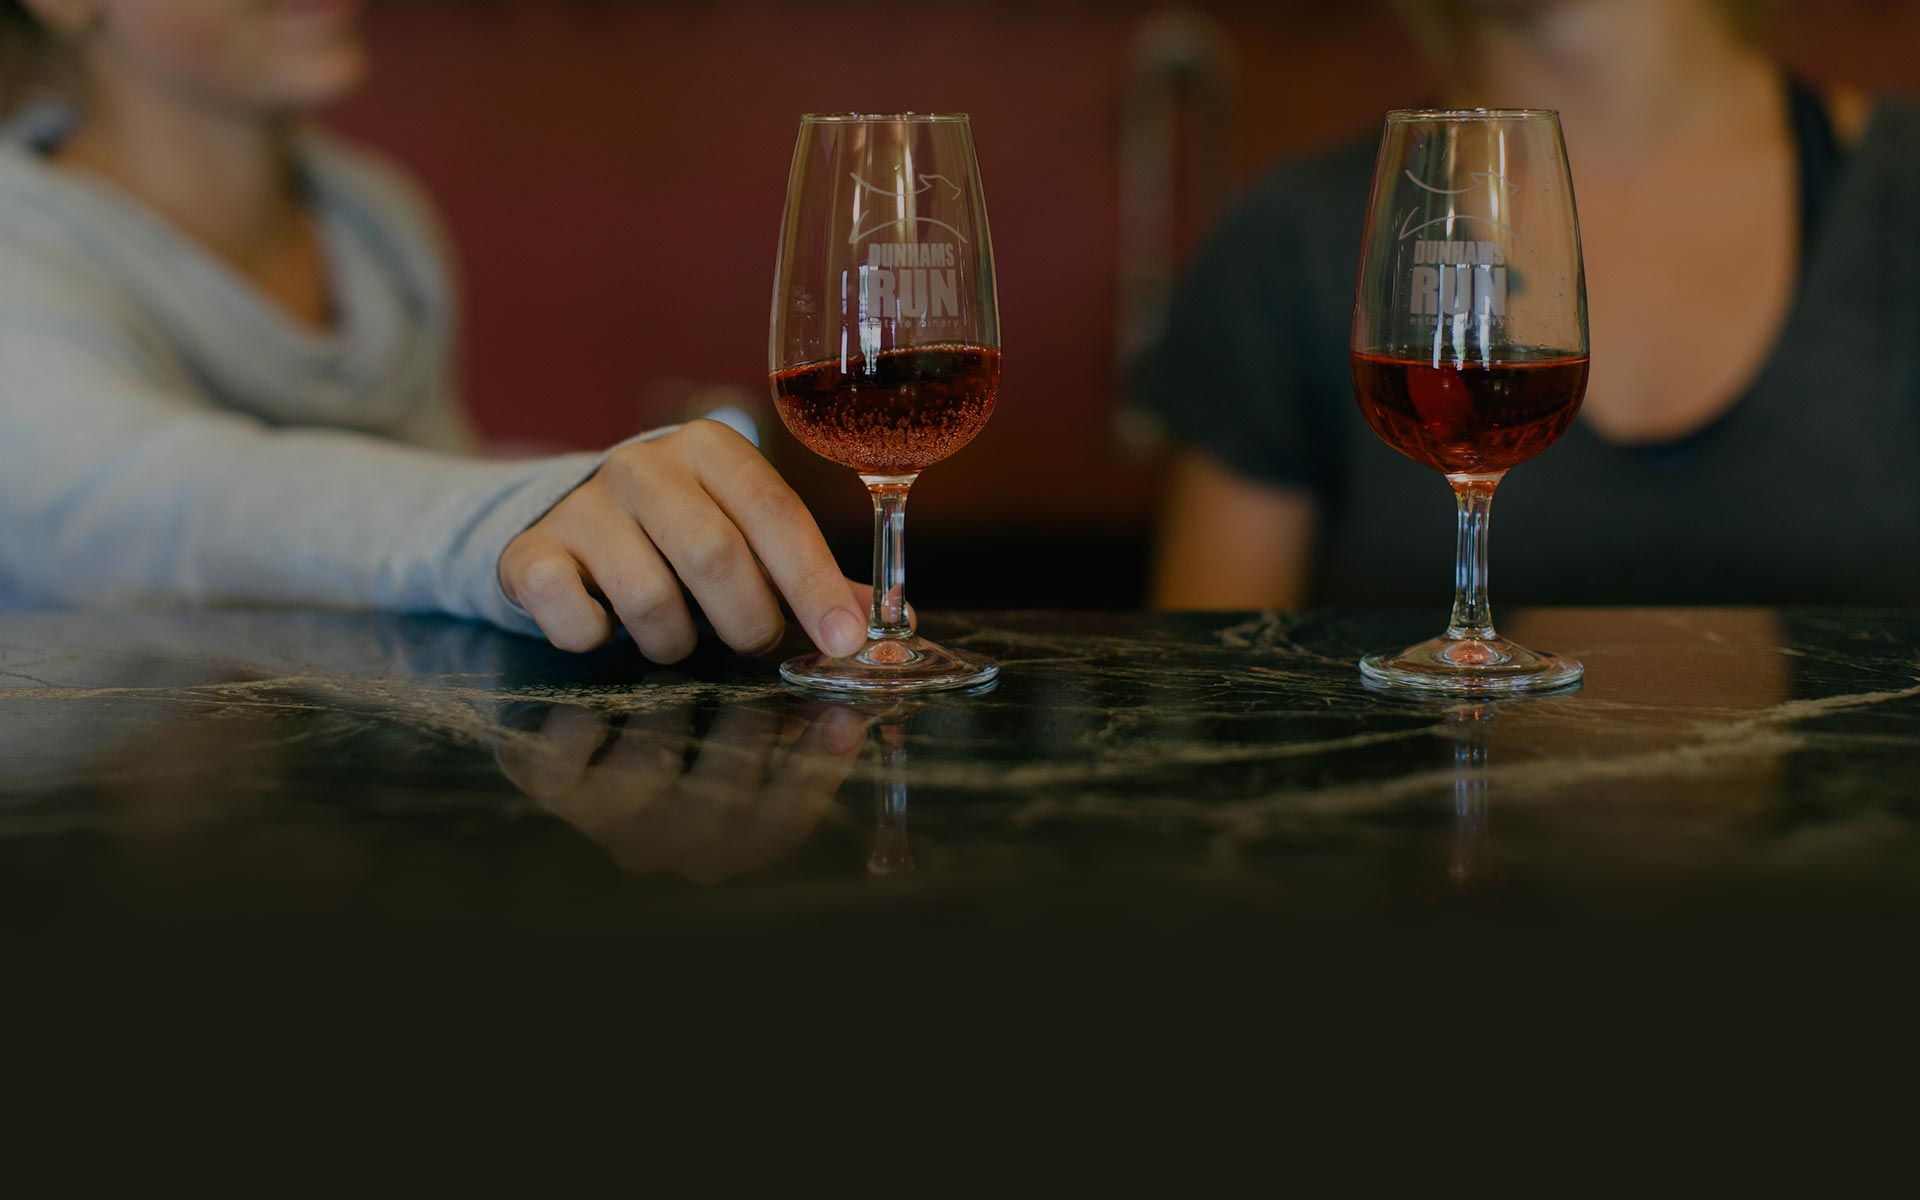 <h1>Interested in local wines for your establishment?<br /> We can help!</h1>